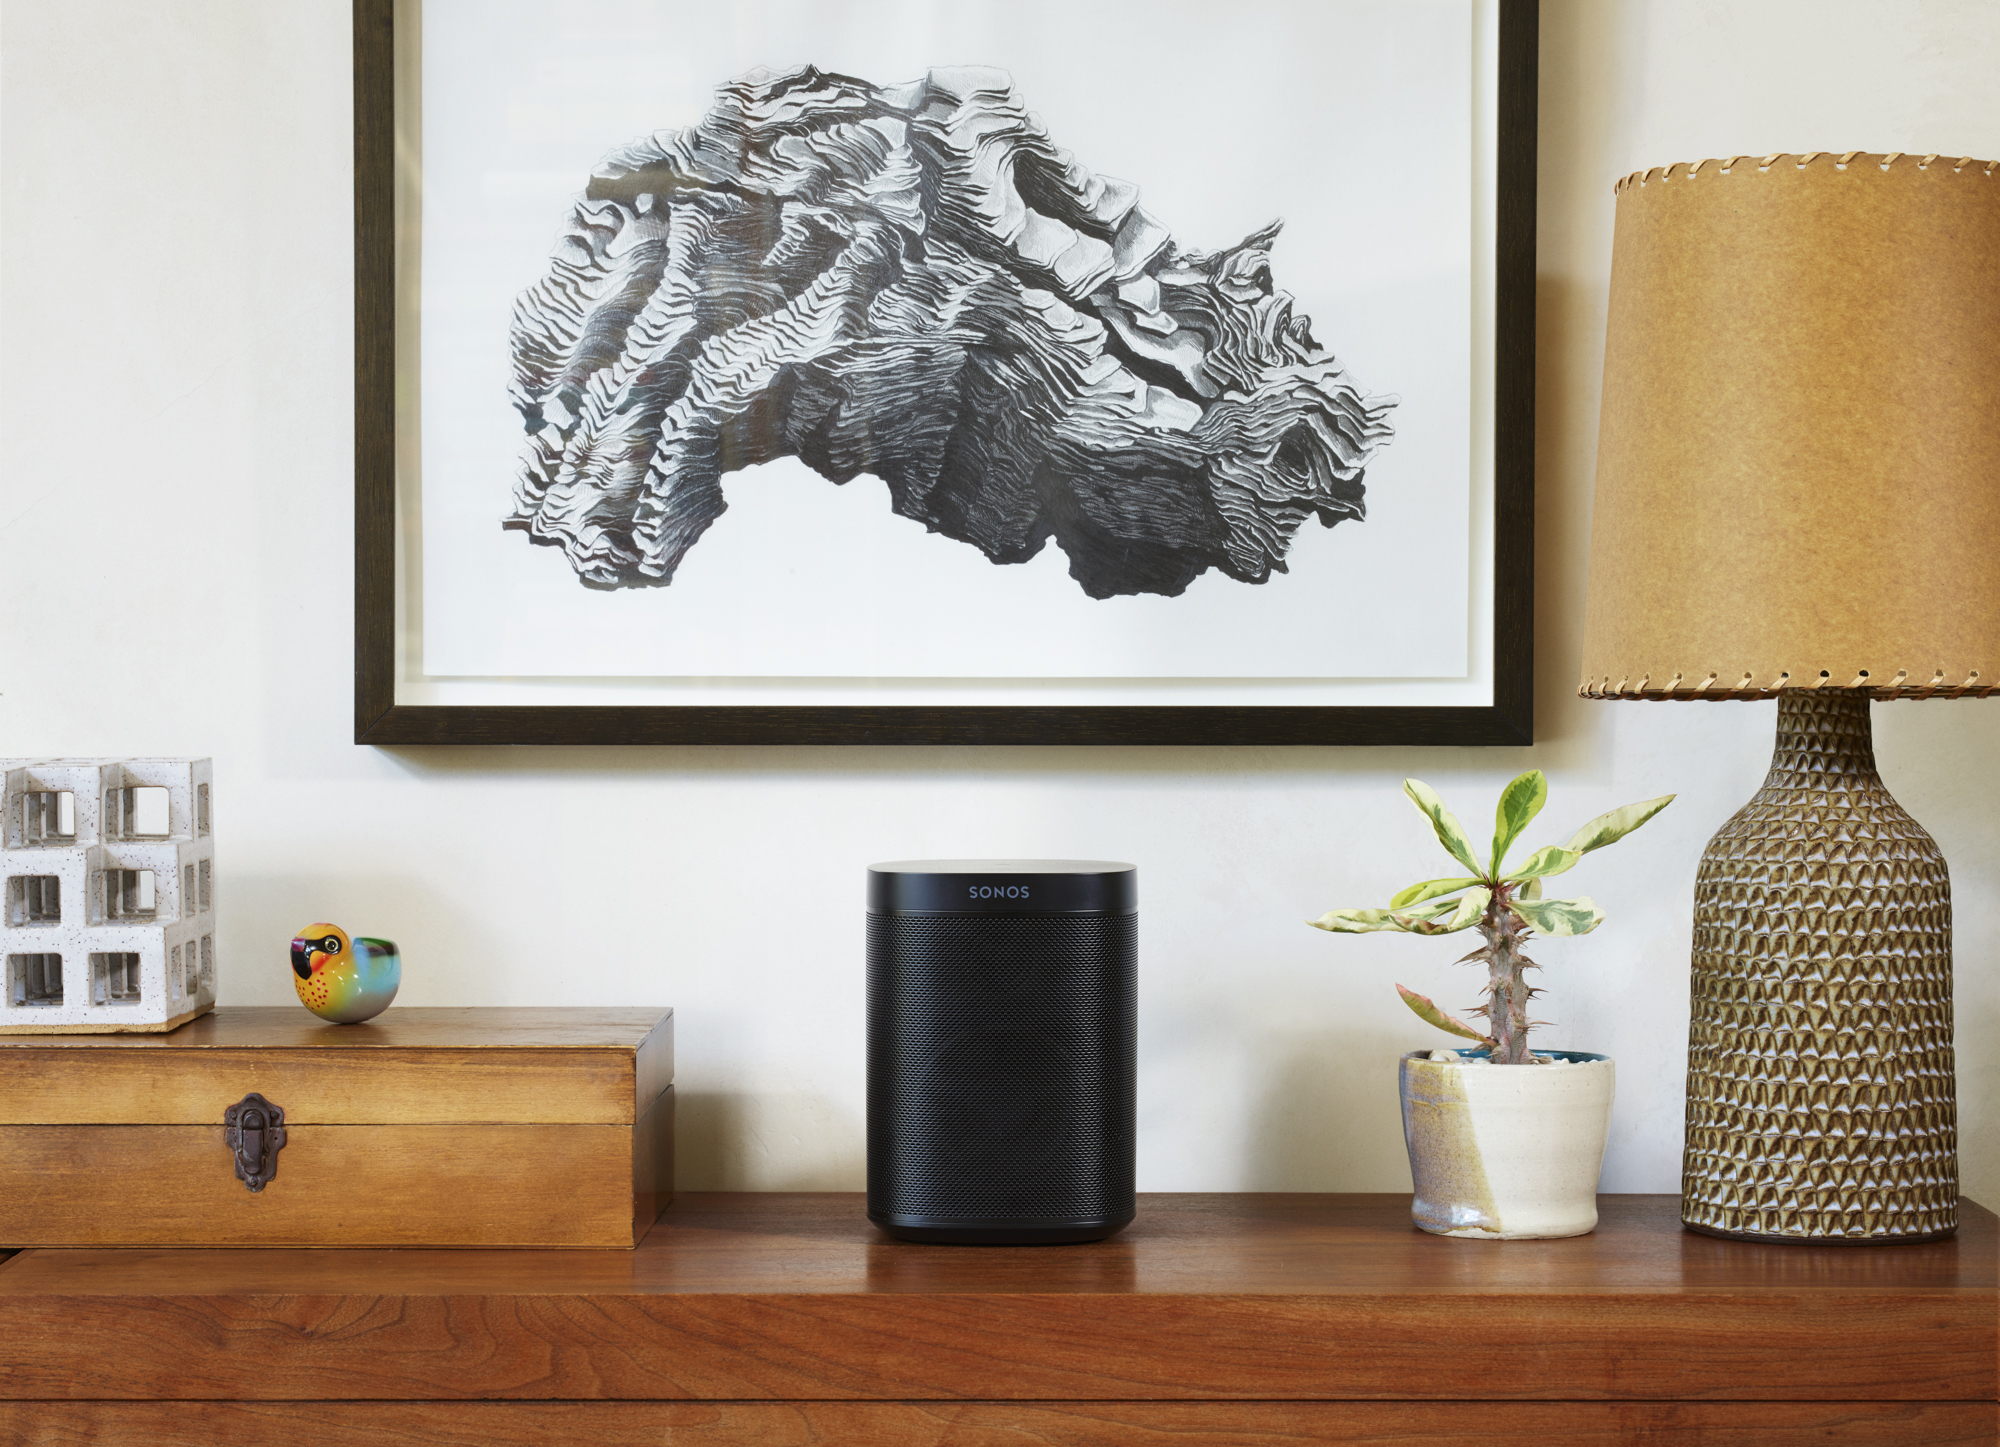 Sonos_Lifestyle_RGB_Small_One_Black_2.jpg